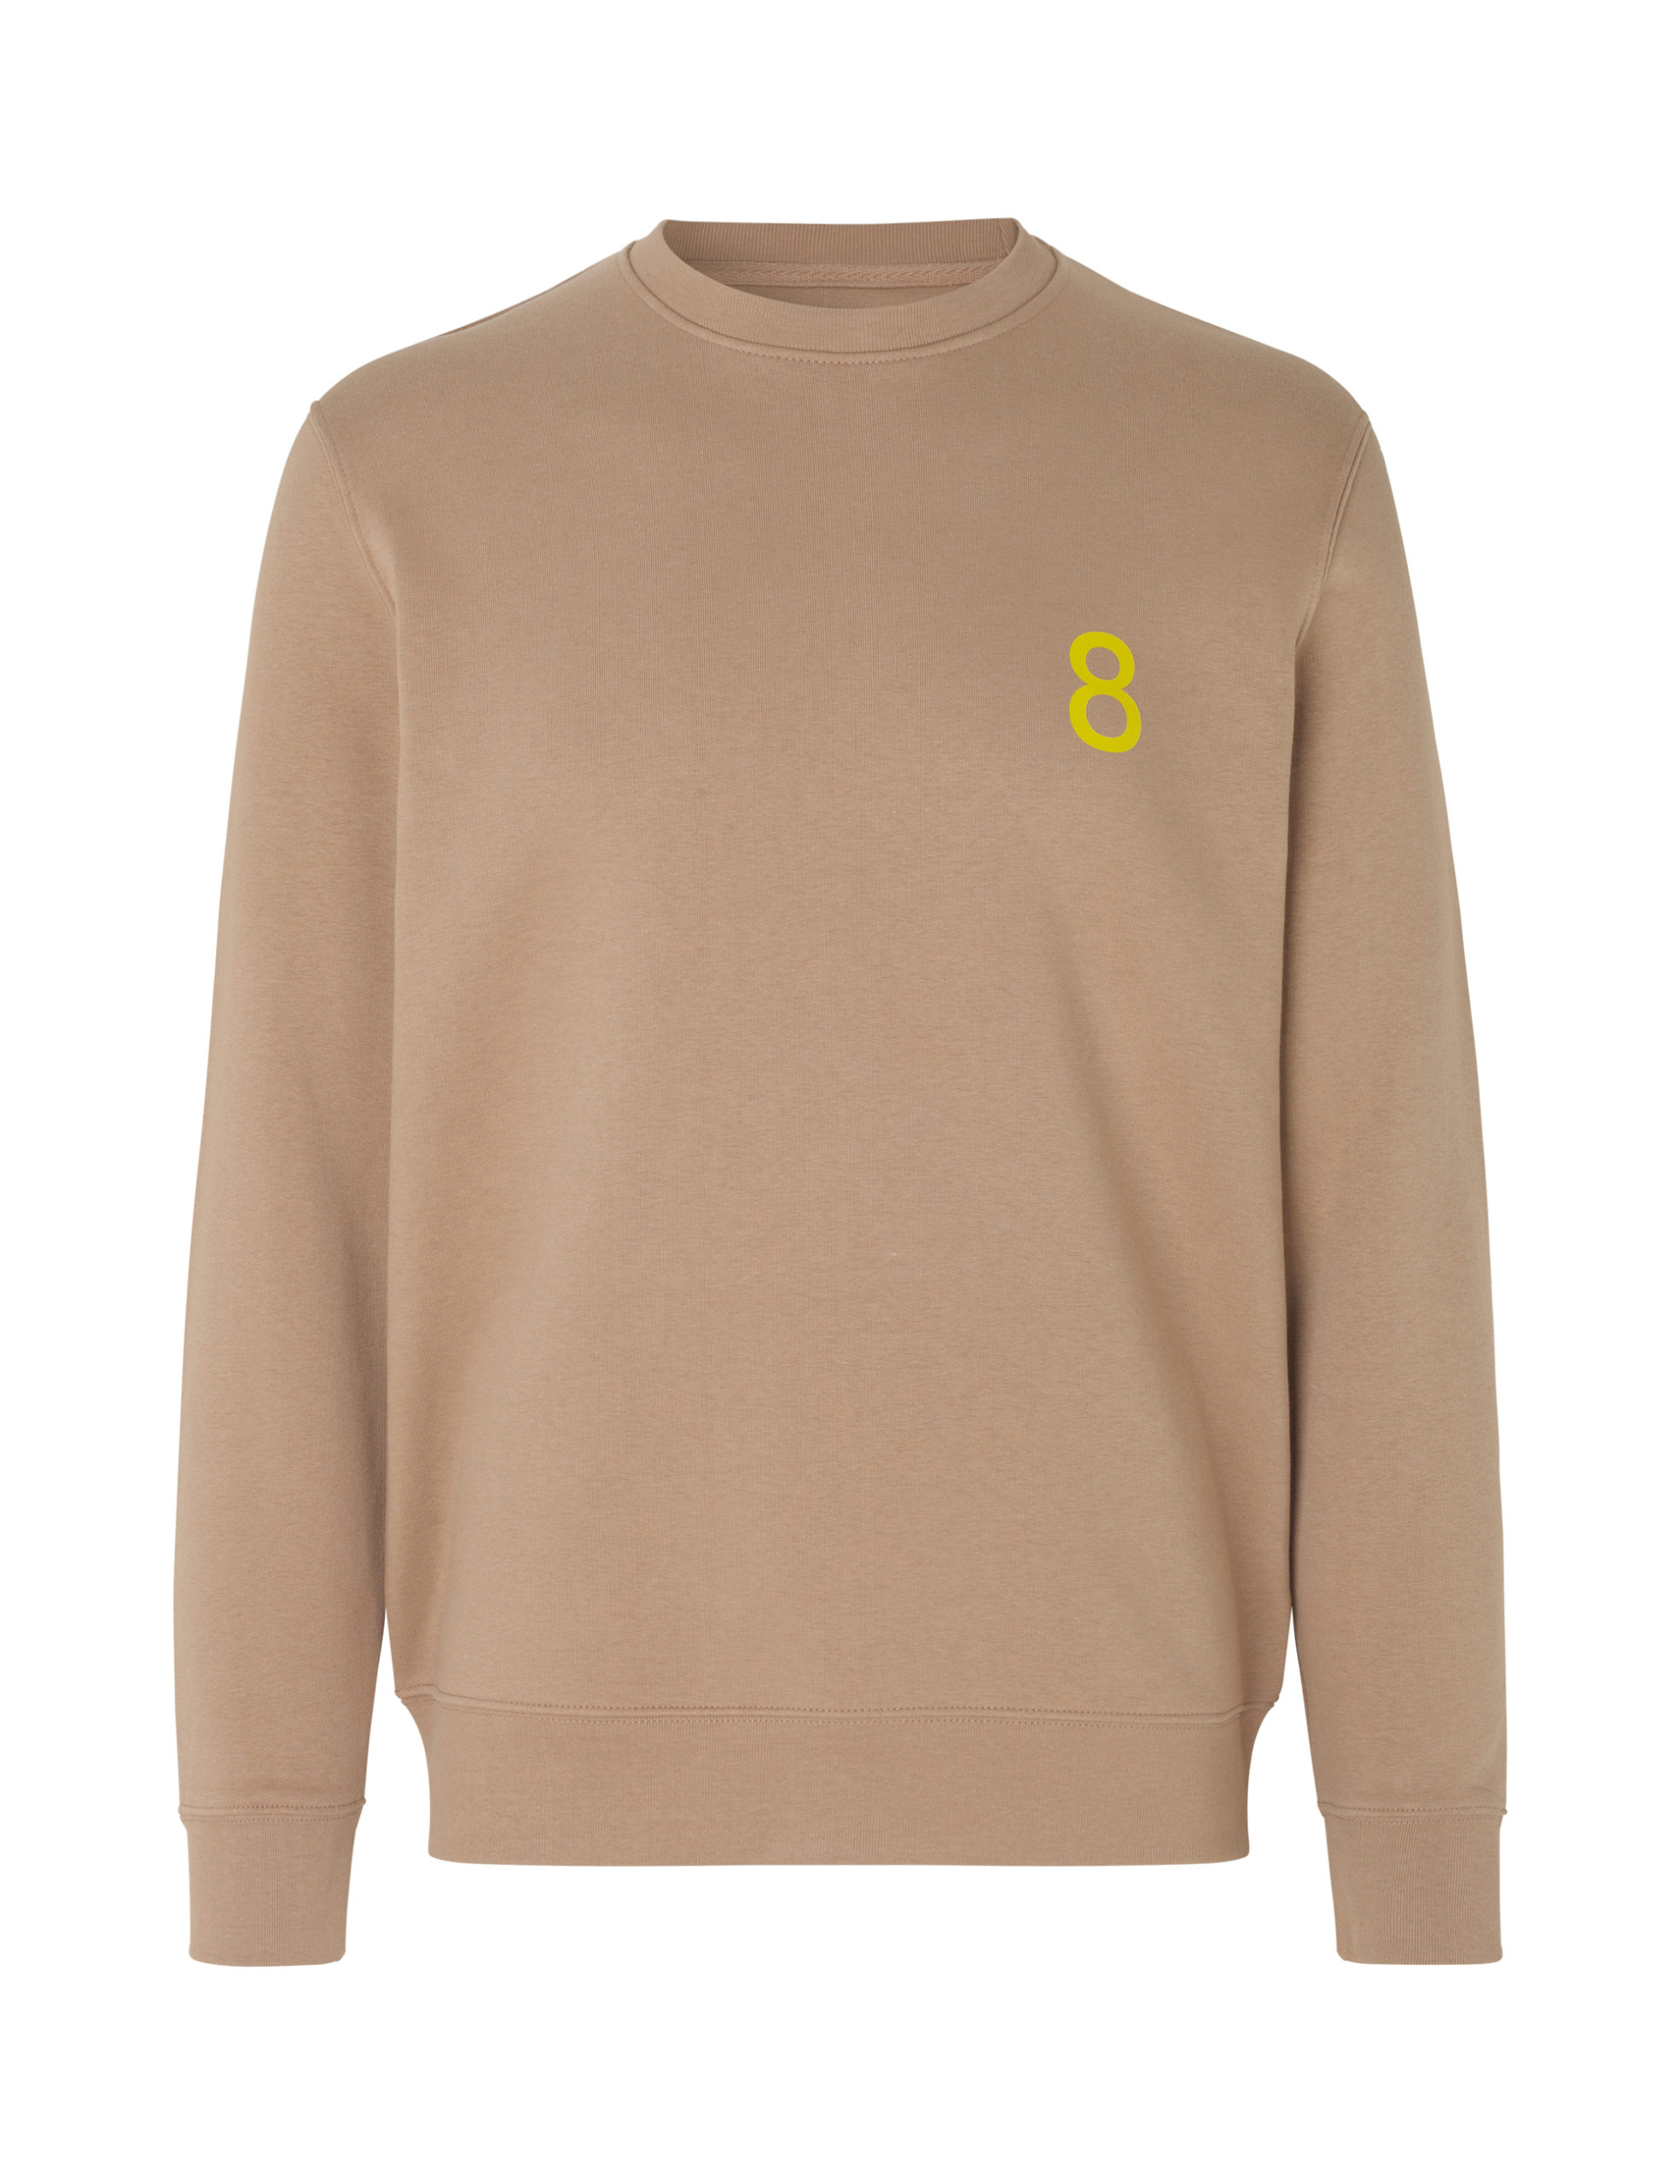 PWR_SweatShirt_LightBrown